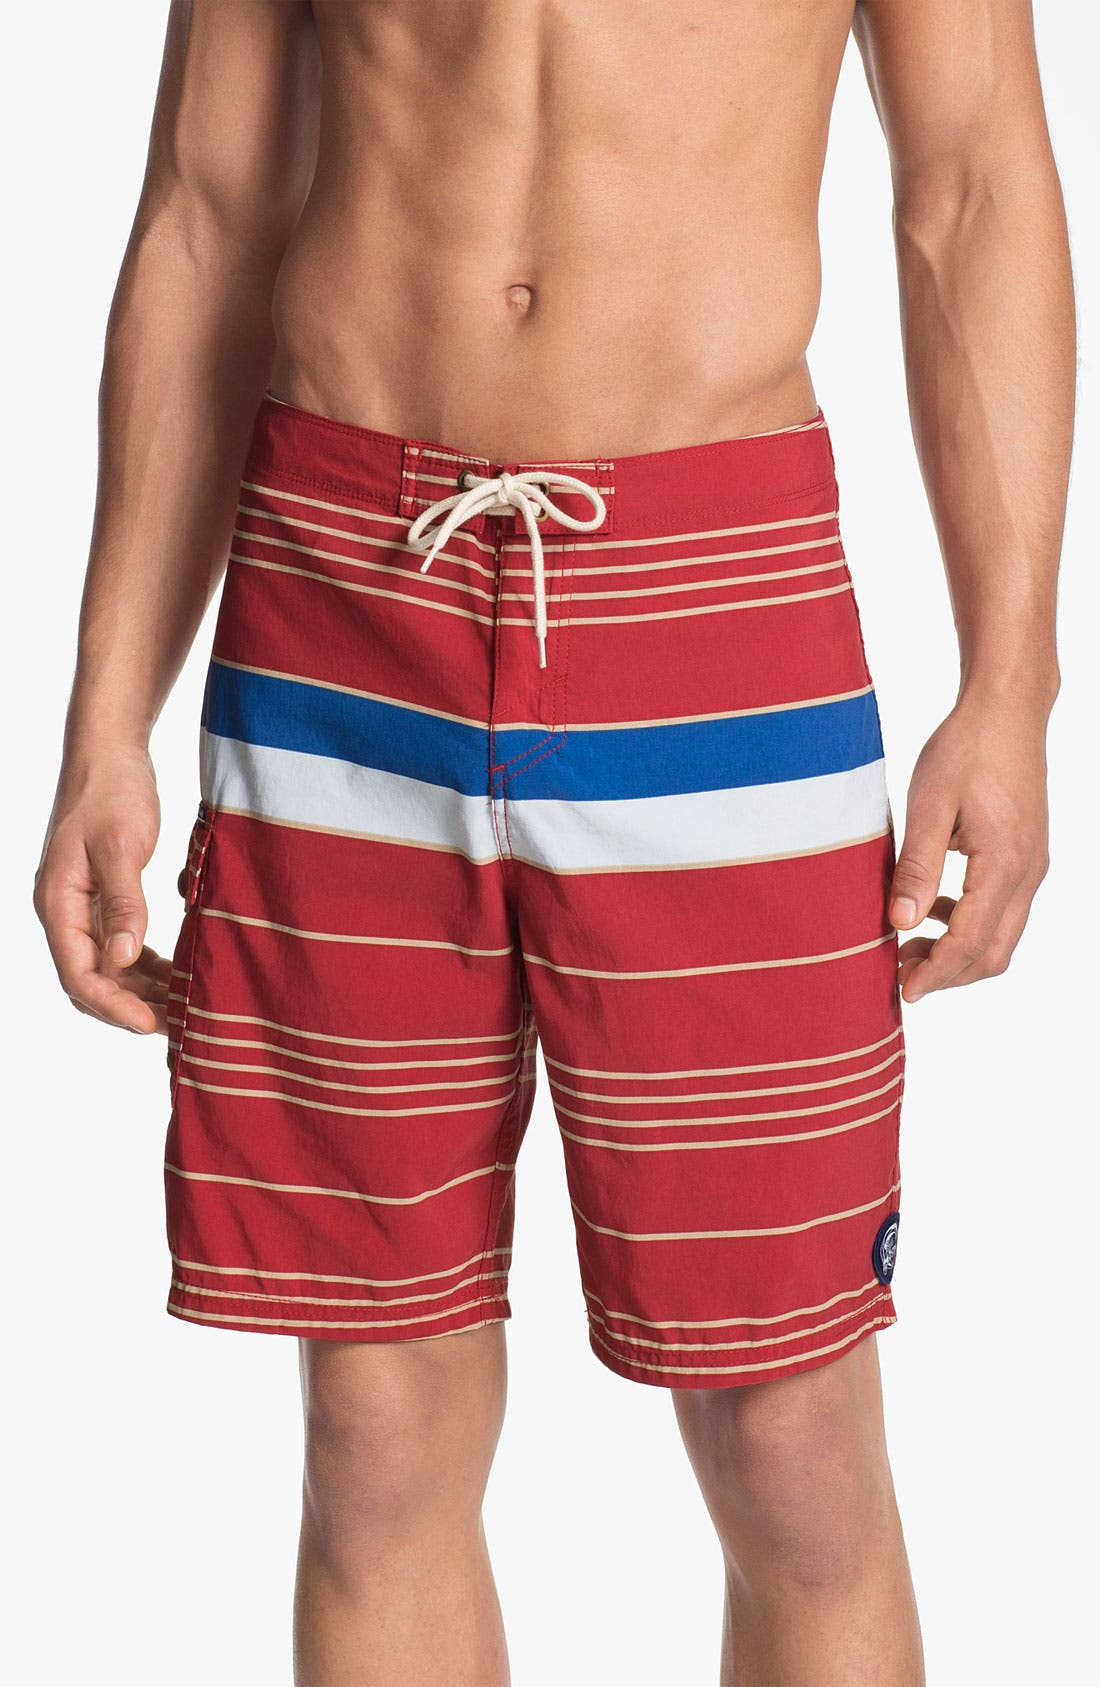 Alternate Image 1 Selected - Jack O'Neill 'Mar' Board Shorts